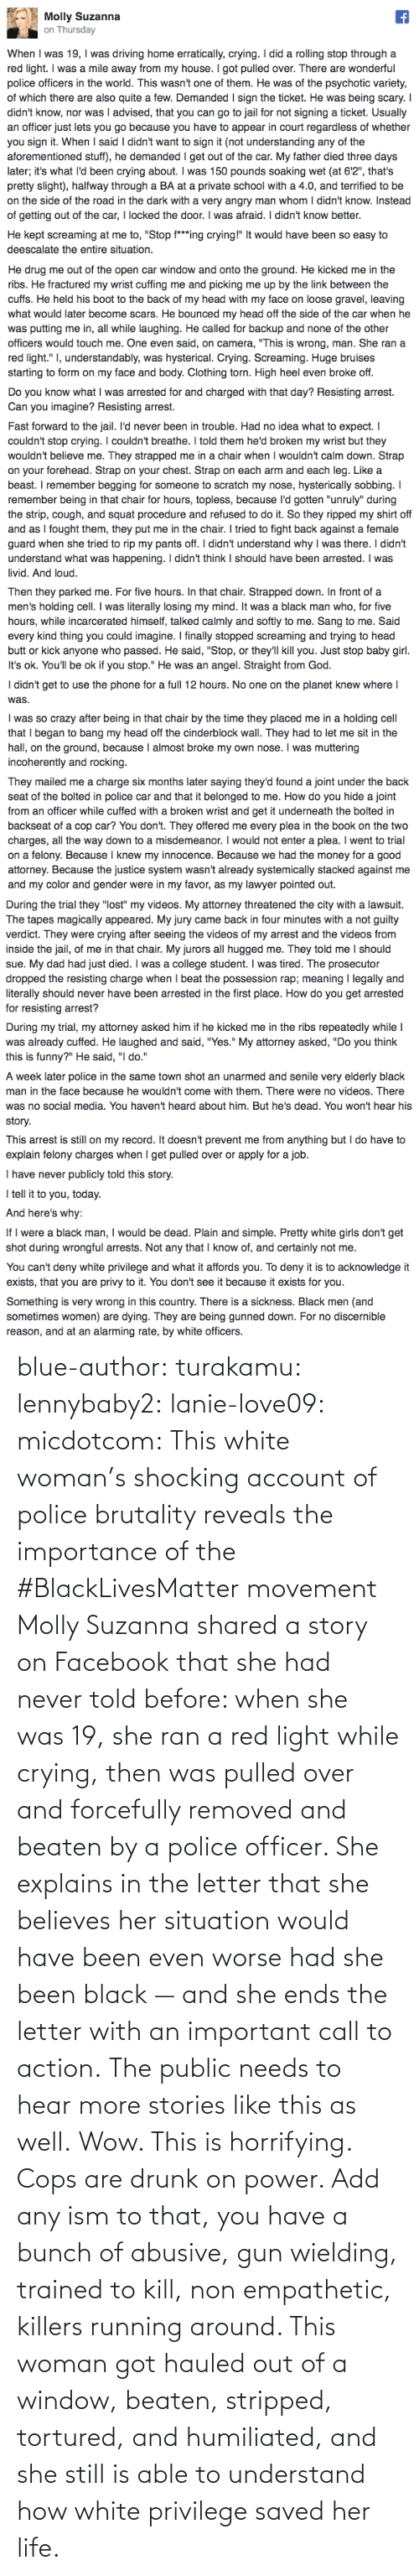 understand: blue-author: turakamu:  lennybaby2:  lanie-love09:  micdotcom:  This white woman's shocking account of police brutality reveals the importance of the #BlackLivesMatter movement Molly Suzanna shared a story on Facebook that she had never told before: when she was 19, she ran a red light while crying, then was pulled over and forcefully removed and beaten by a police officer. She explains in the letter that she believes her situation would have been even worse had she been black — and she ends the letter with an important call to action.  The public needs to hear more stories like this as well.  Wow. This is horrifying.  Cops are drunk on power. Add any ism to that, you have a bunch of abusive, gun wielding, trained to kill, non empathetic, killers running around.    This woman got hauled out of a window, beaten, stripped, tortured, and humiliated, and she still is able to understand how white privilege saved her life.